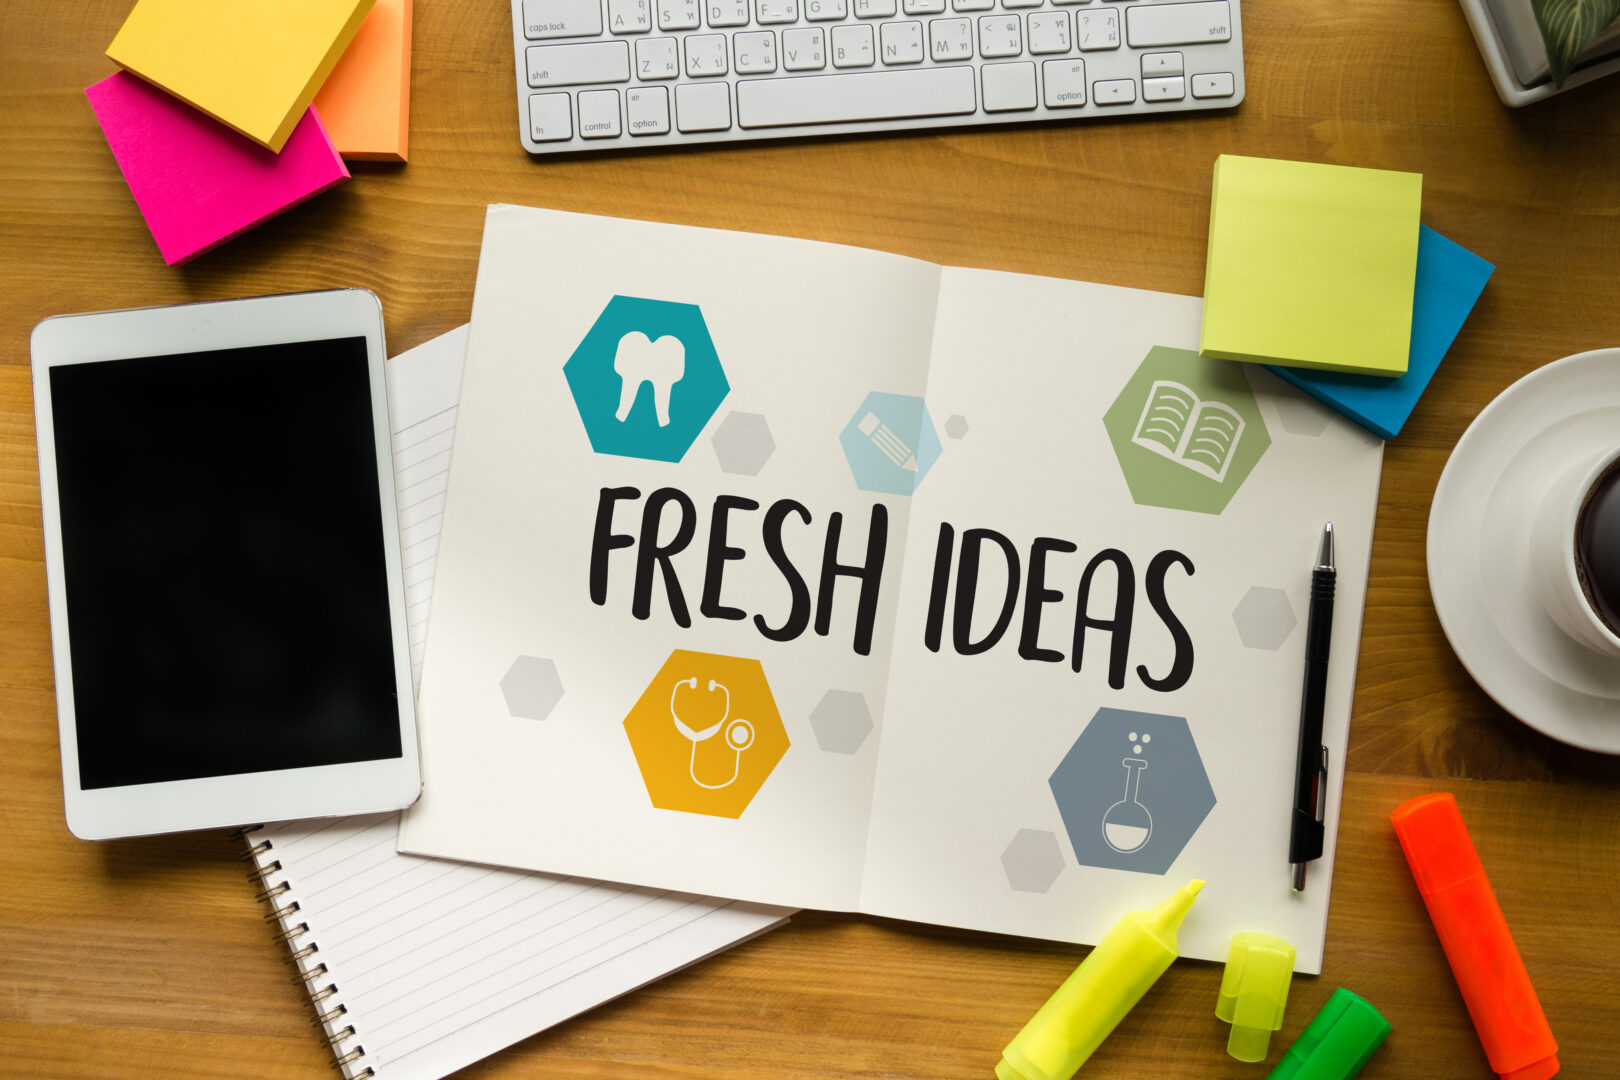 shutterstock_614472443-1 FRESH IDEAS (1)